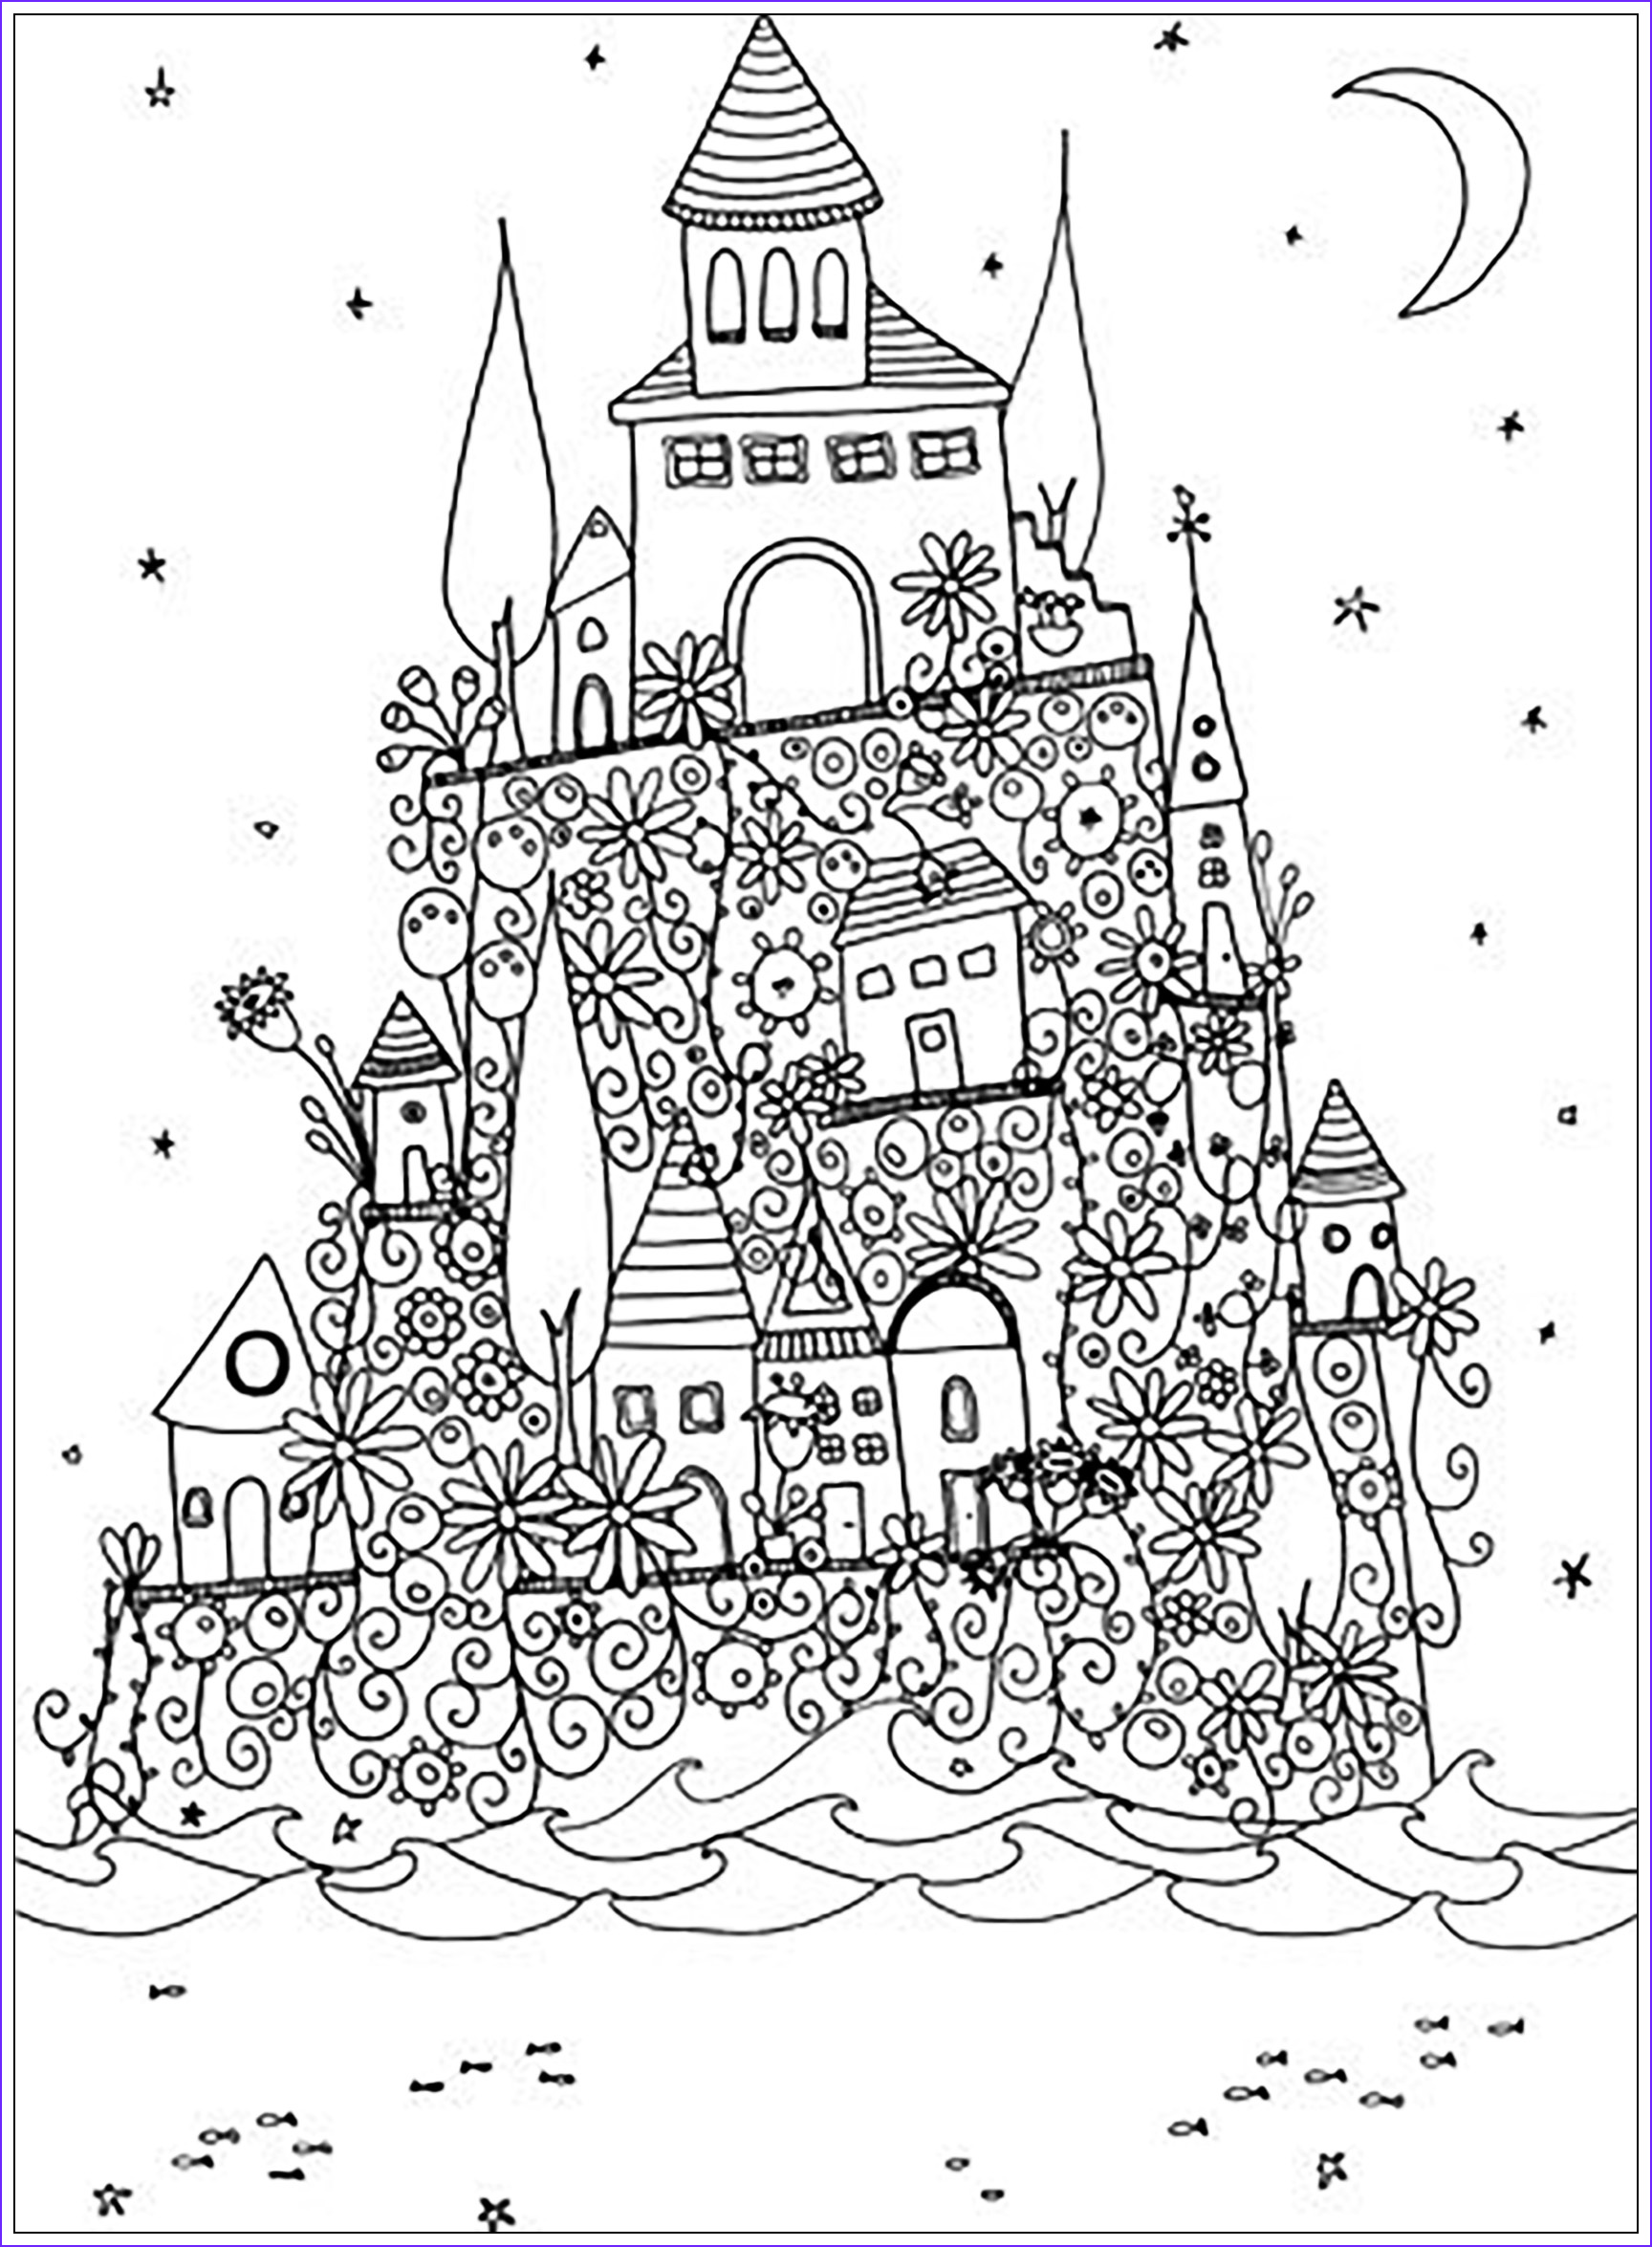 image=architecture home coloring adult fantasy castle 1